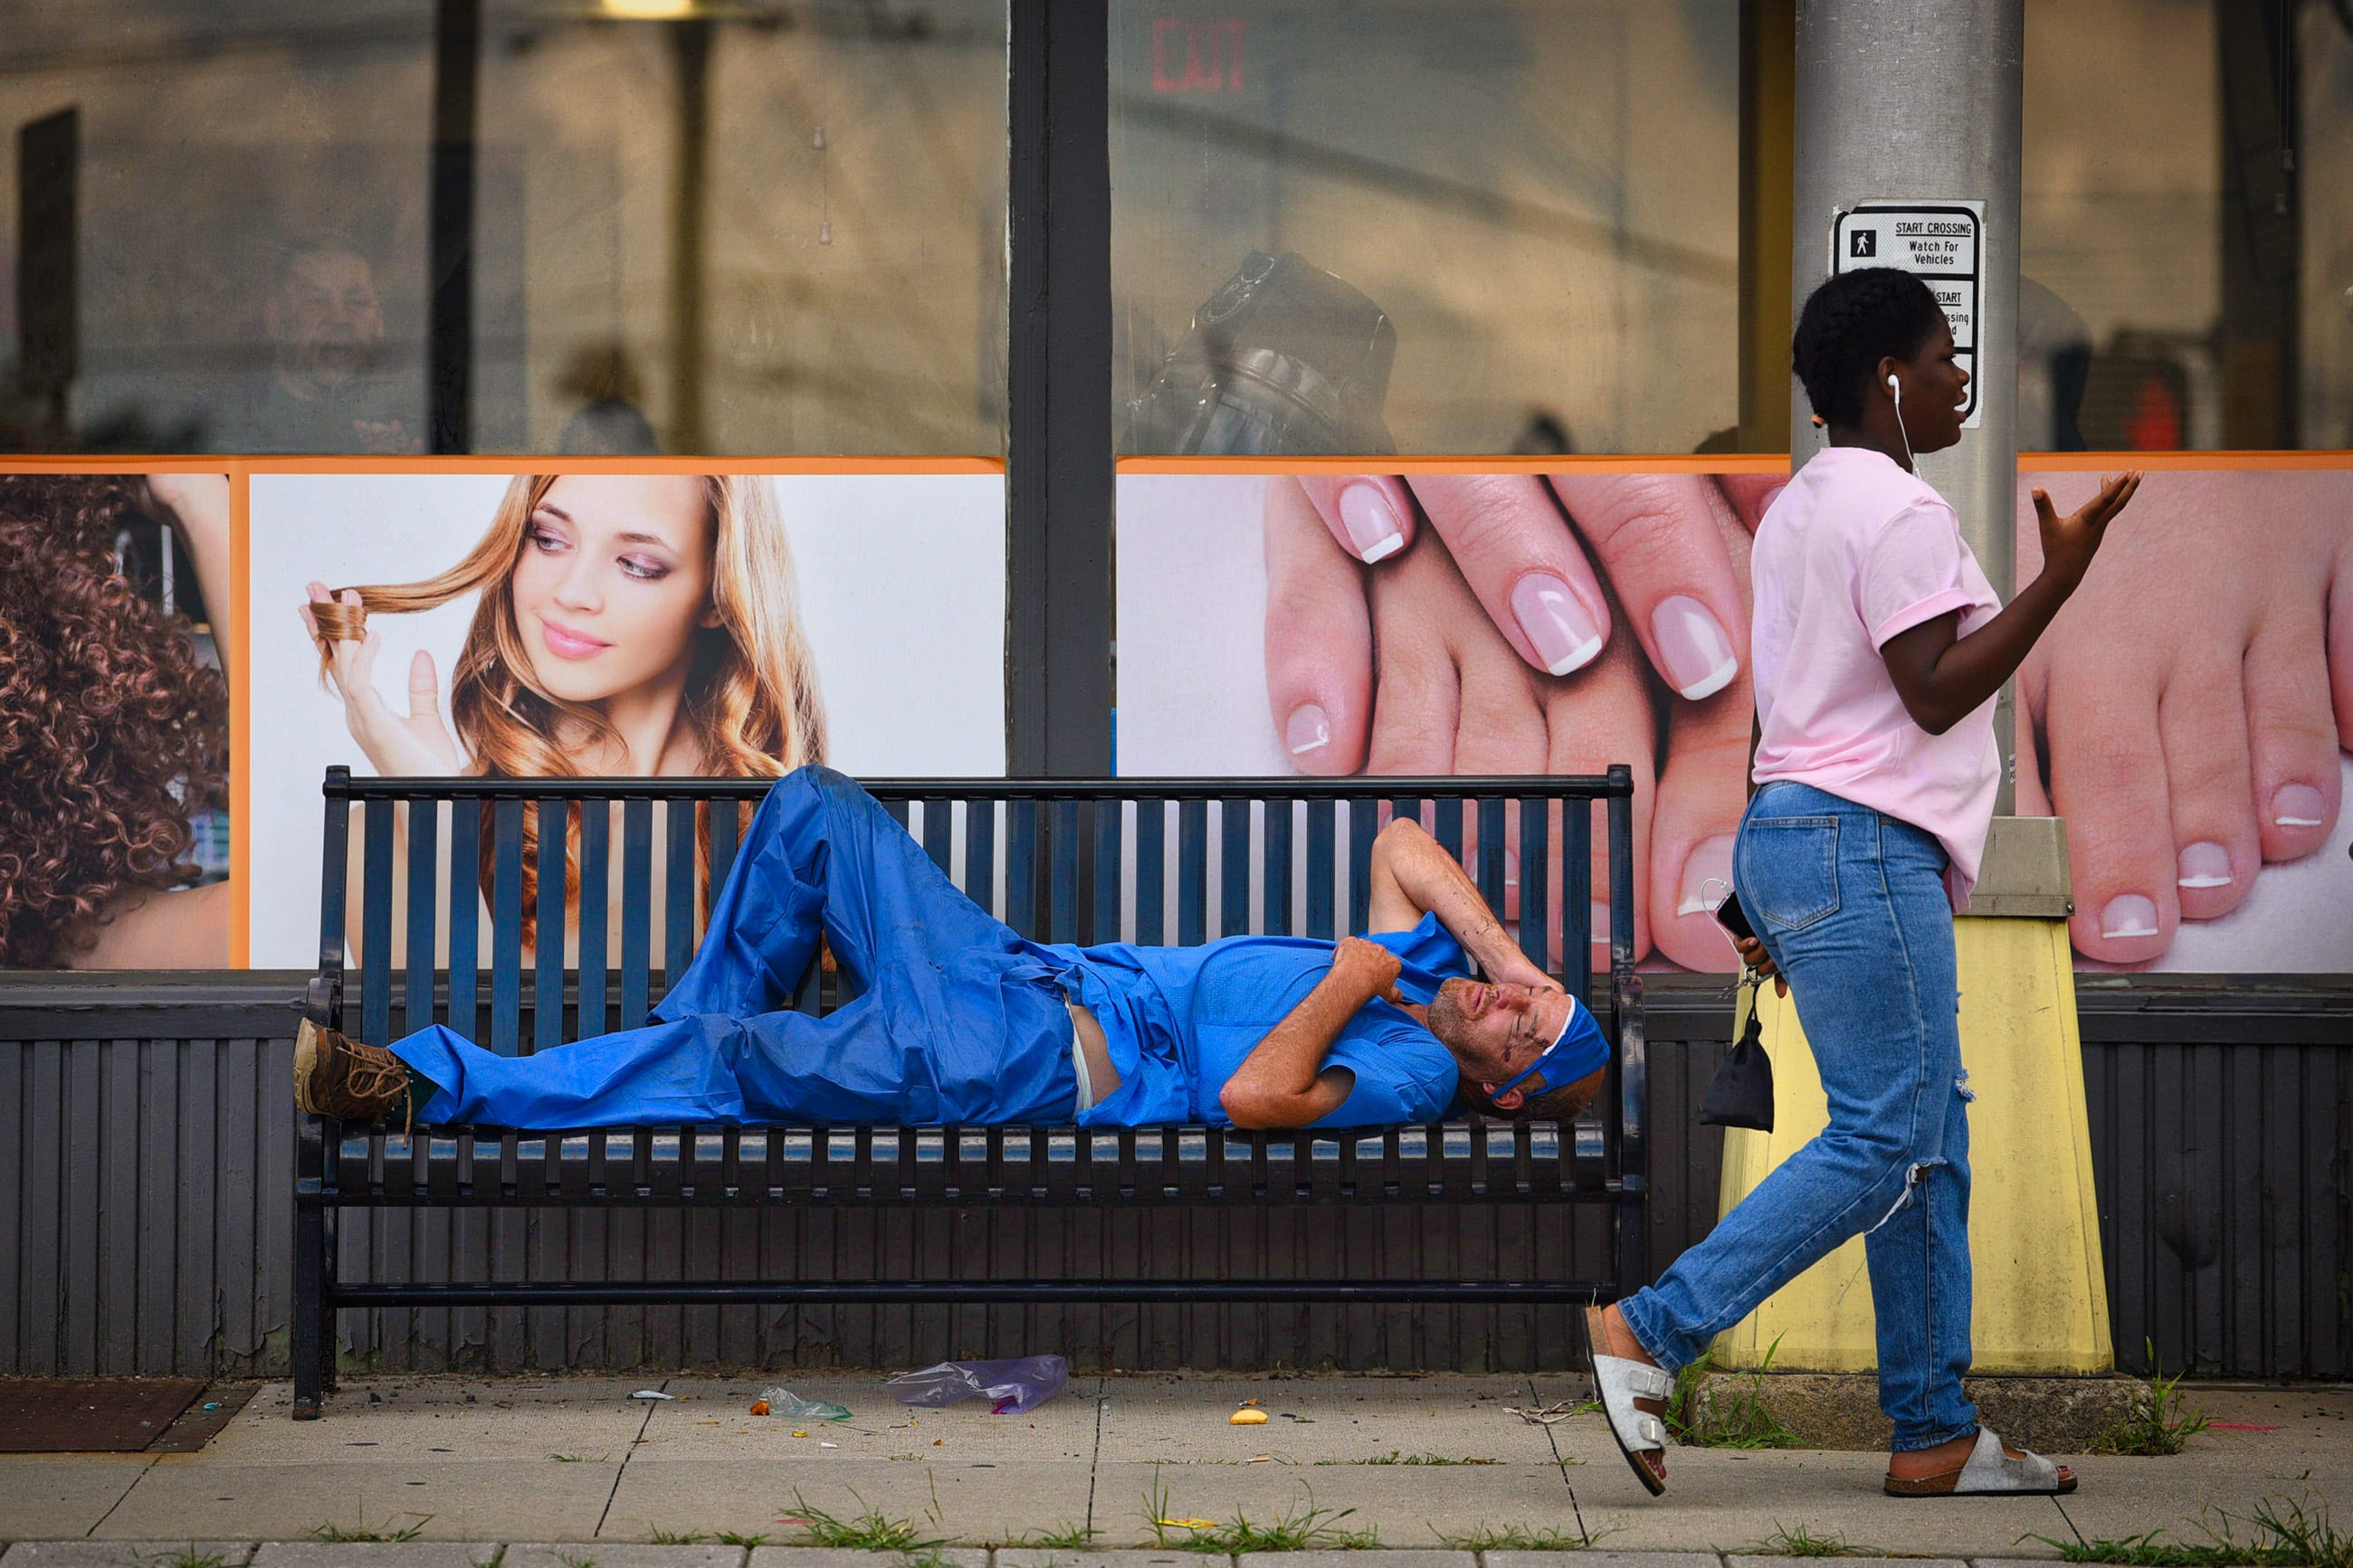 An unidentified man in hospital scrubs rests on a bench outside of a beauty salon at the corner of Main and East Anderson streets as a woman walks by talking on her phone in Hackensack. Photographed on 07/18/21.